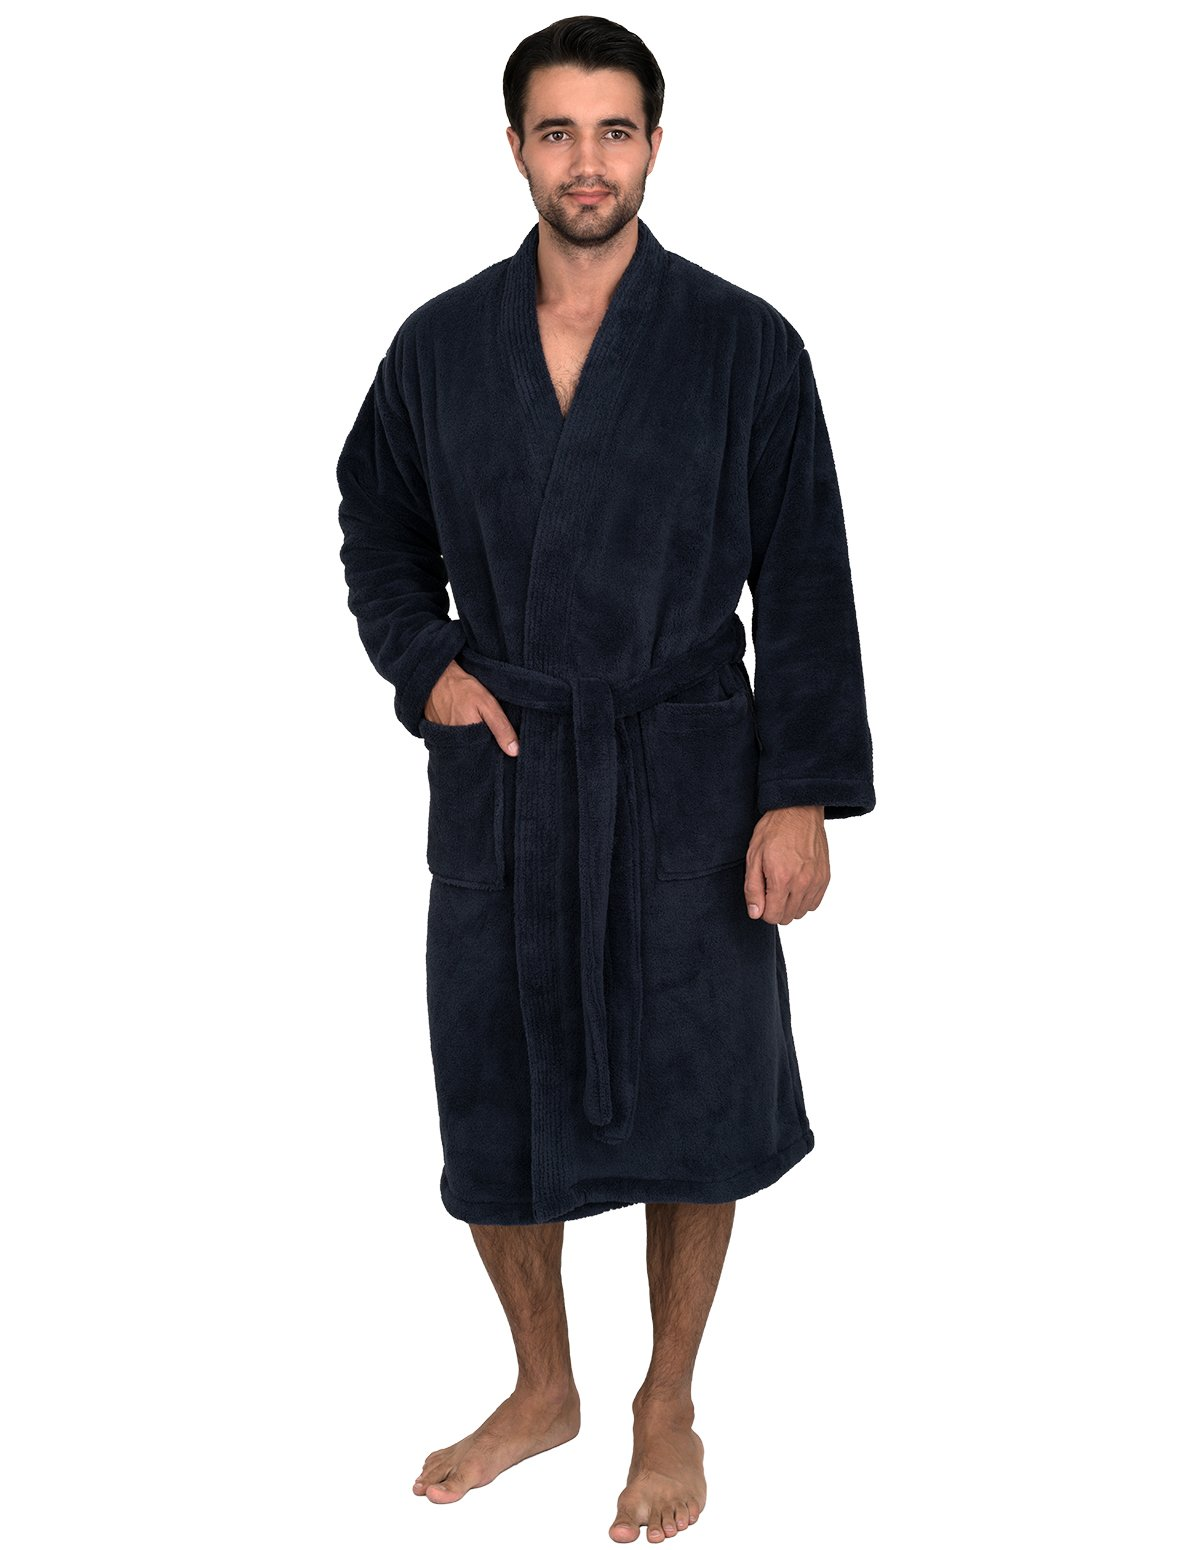 TowelSelections Super Soft Plush Kimono Bathrobe Fleece Spa Robe for Men Large/X-Large Navy by TowelSelections